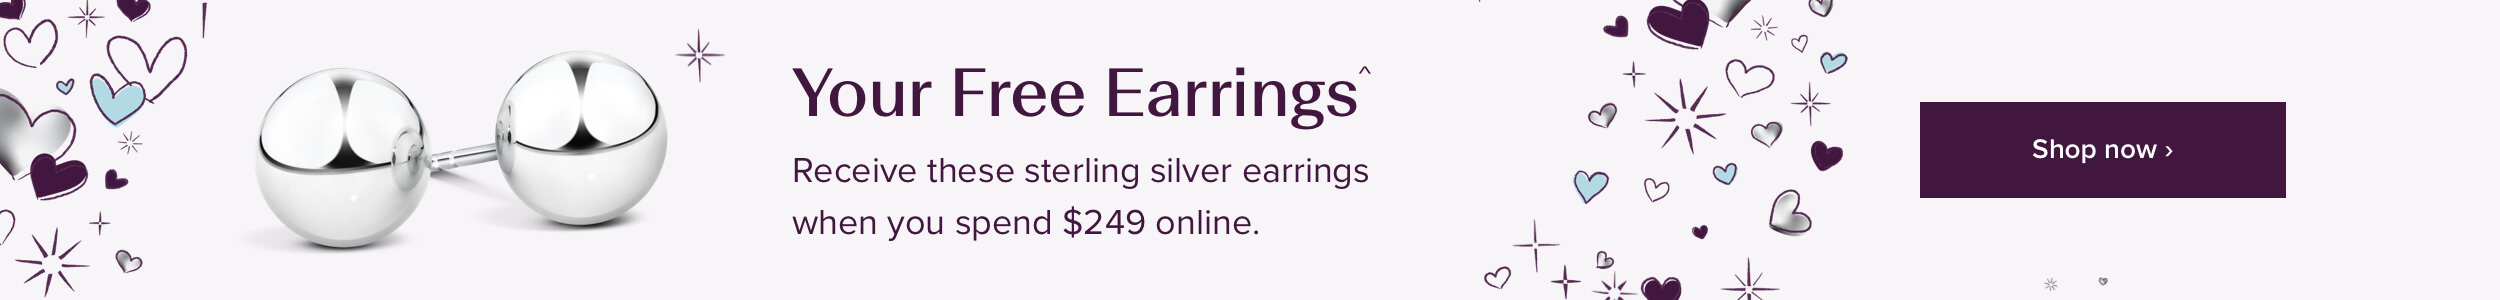 Sterling Silver Stud Earrings free with every online order over $249